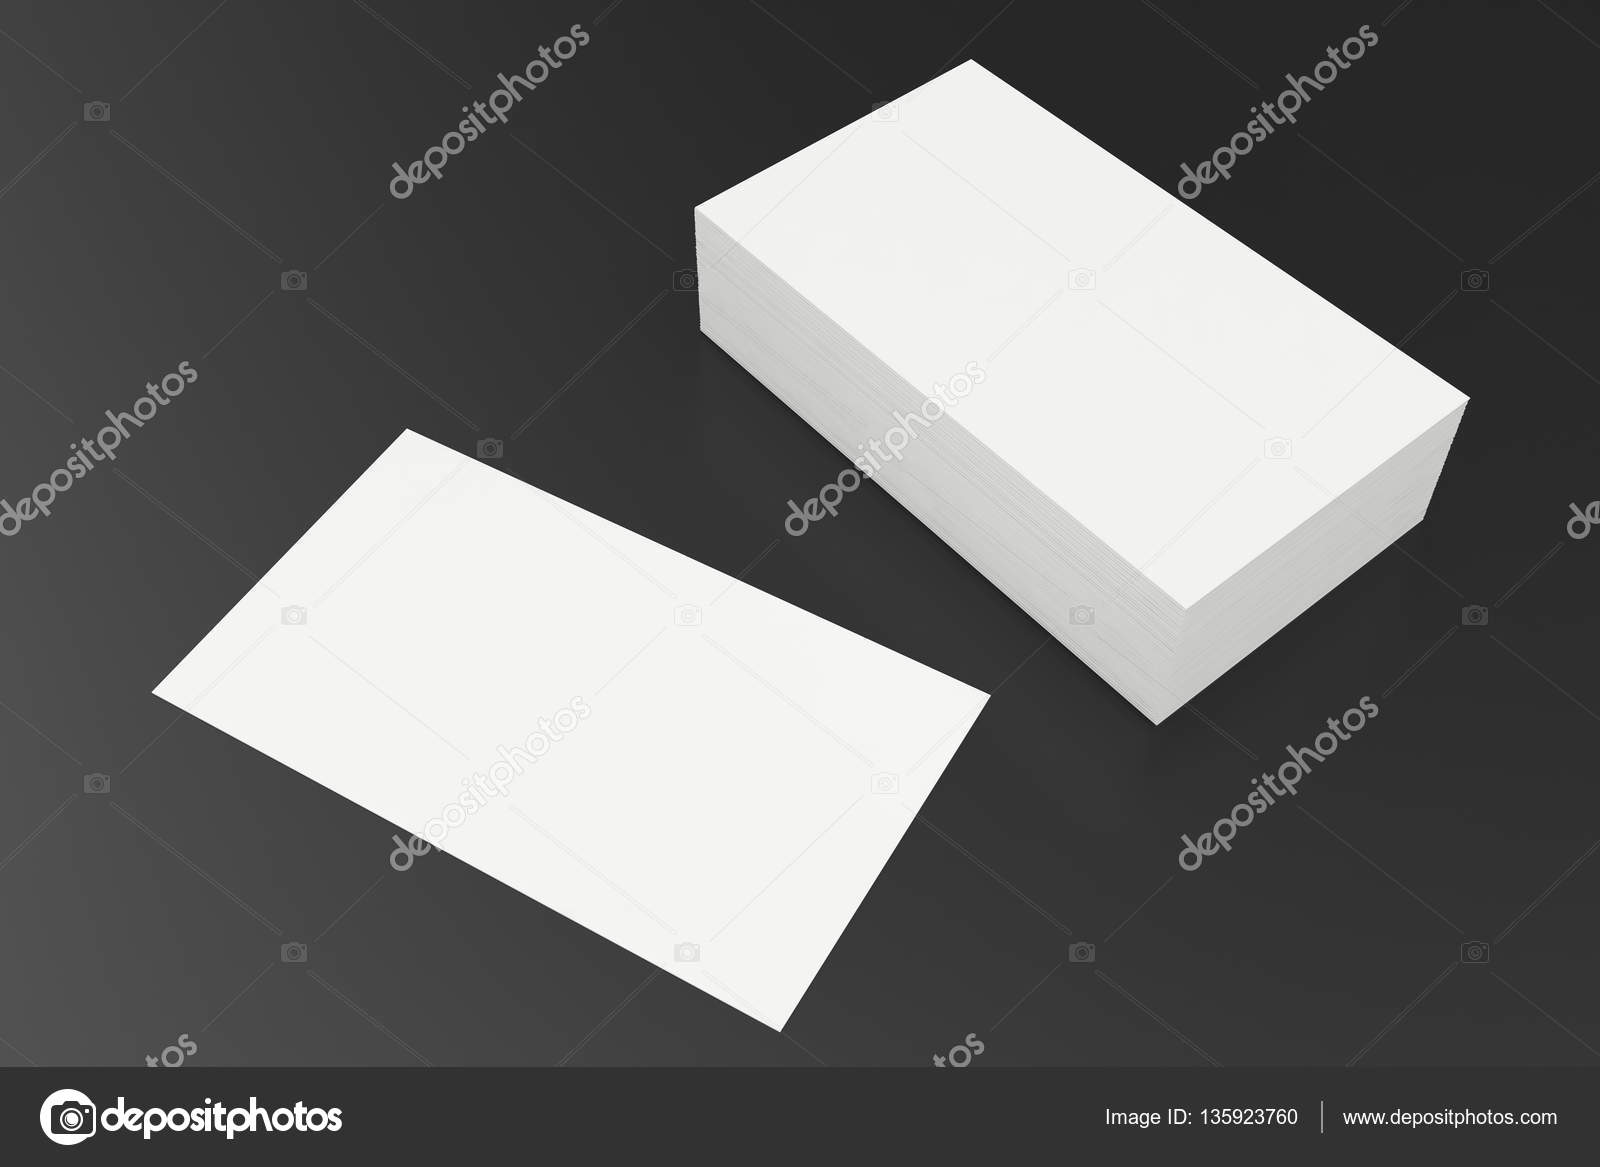 Business cards blank mockup template on balck background 3d business cards blank mockup template on balck background 3d rendering stock photo reheart Image collections